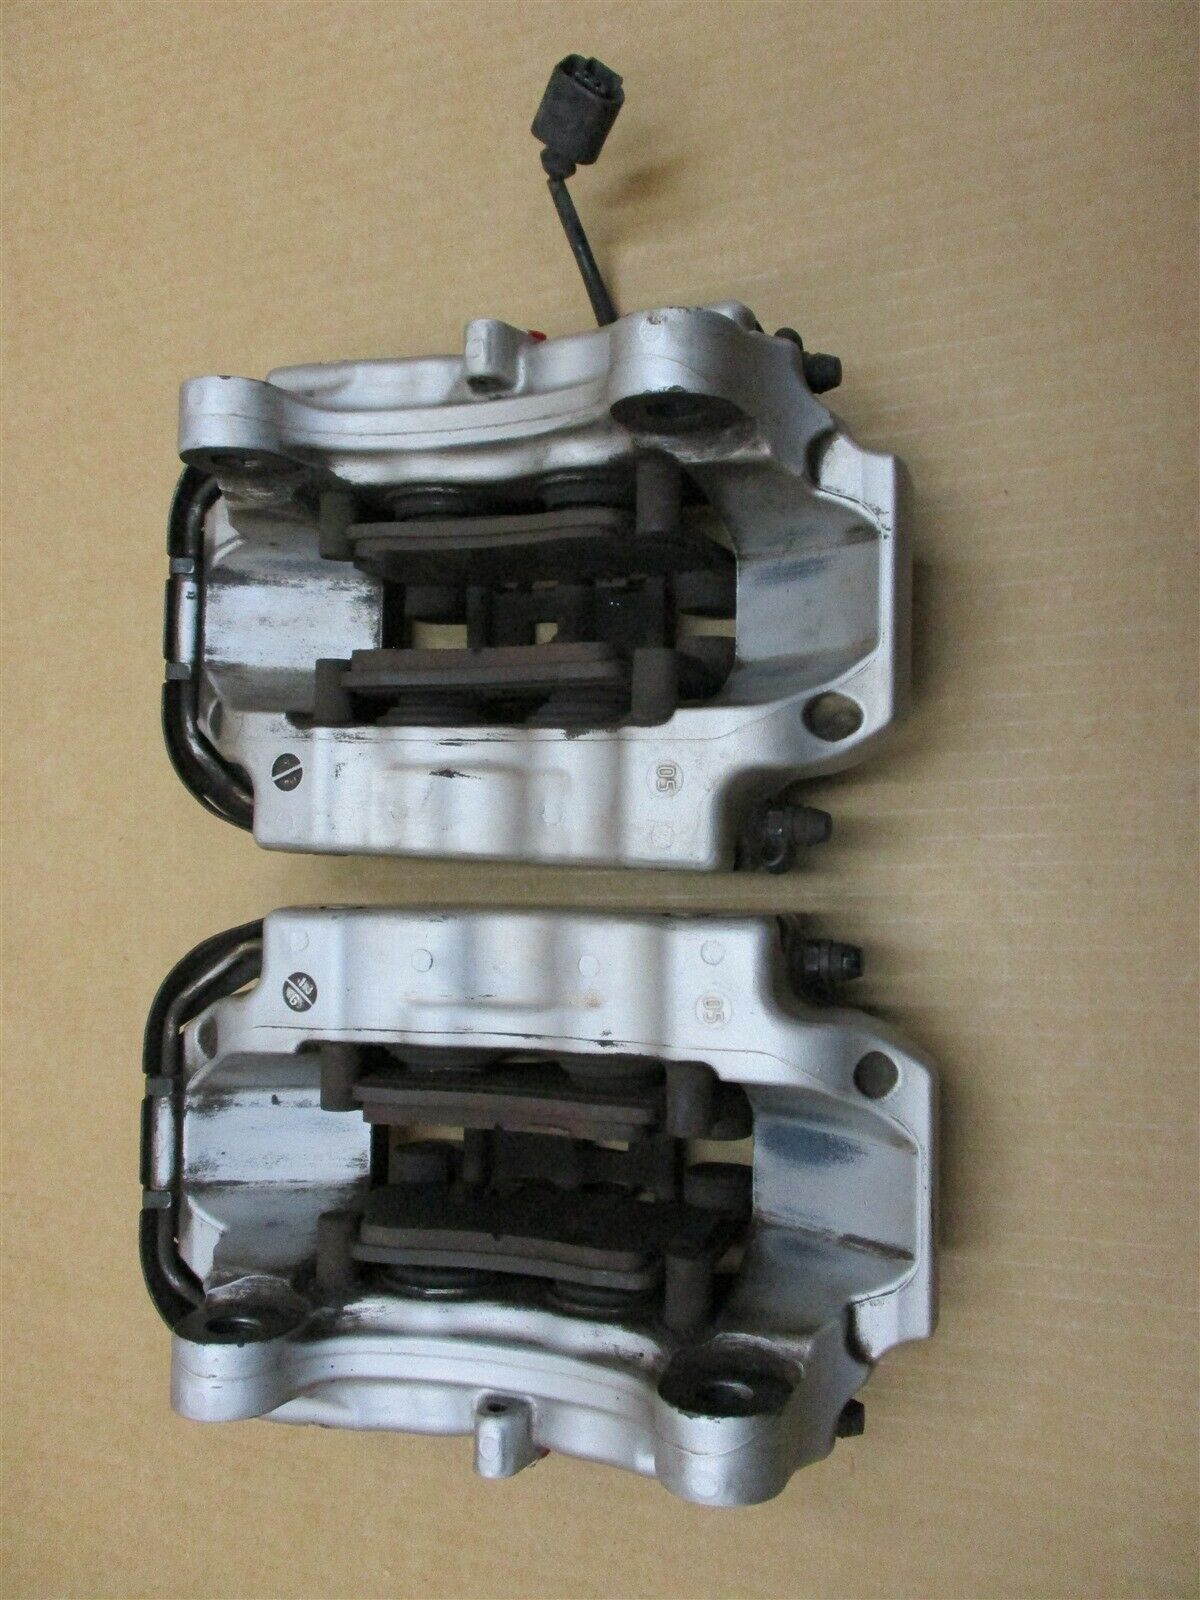 06 Cayenne S Porsche 955 REAR BREMBO BRAKE CALIPERS 207673044A 207673032 153,708